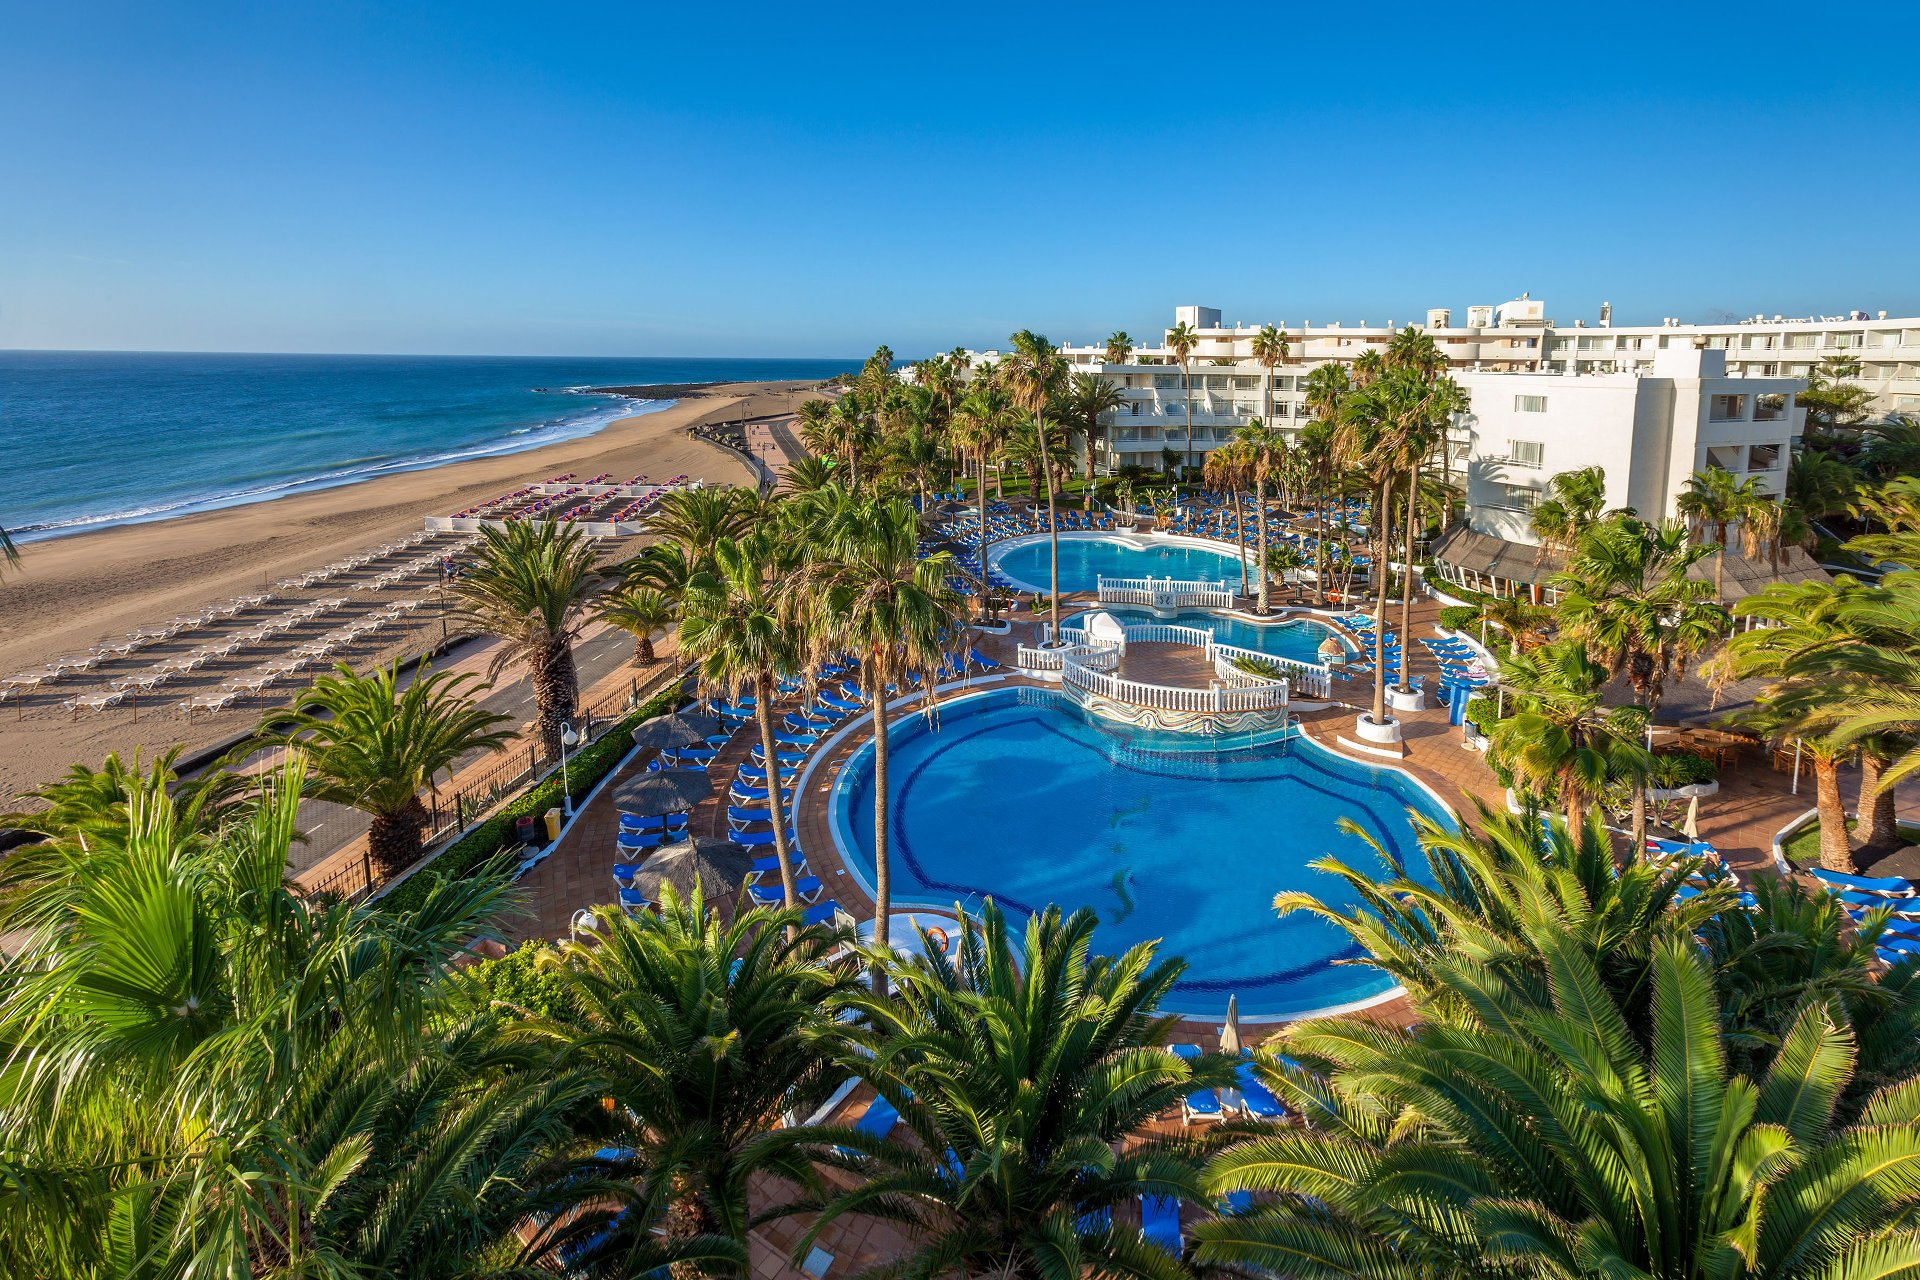 Swimming Pools, sunbathing terraces and beach front at Meliá Sol Lanzarote